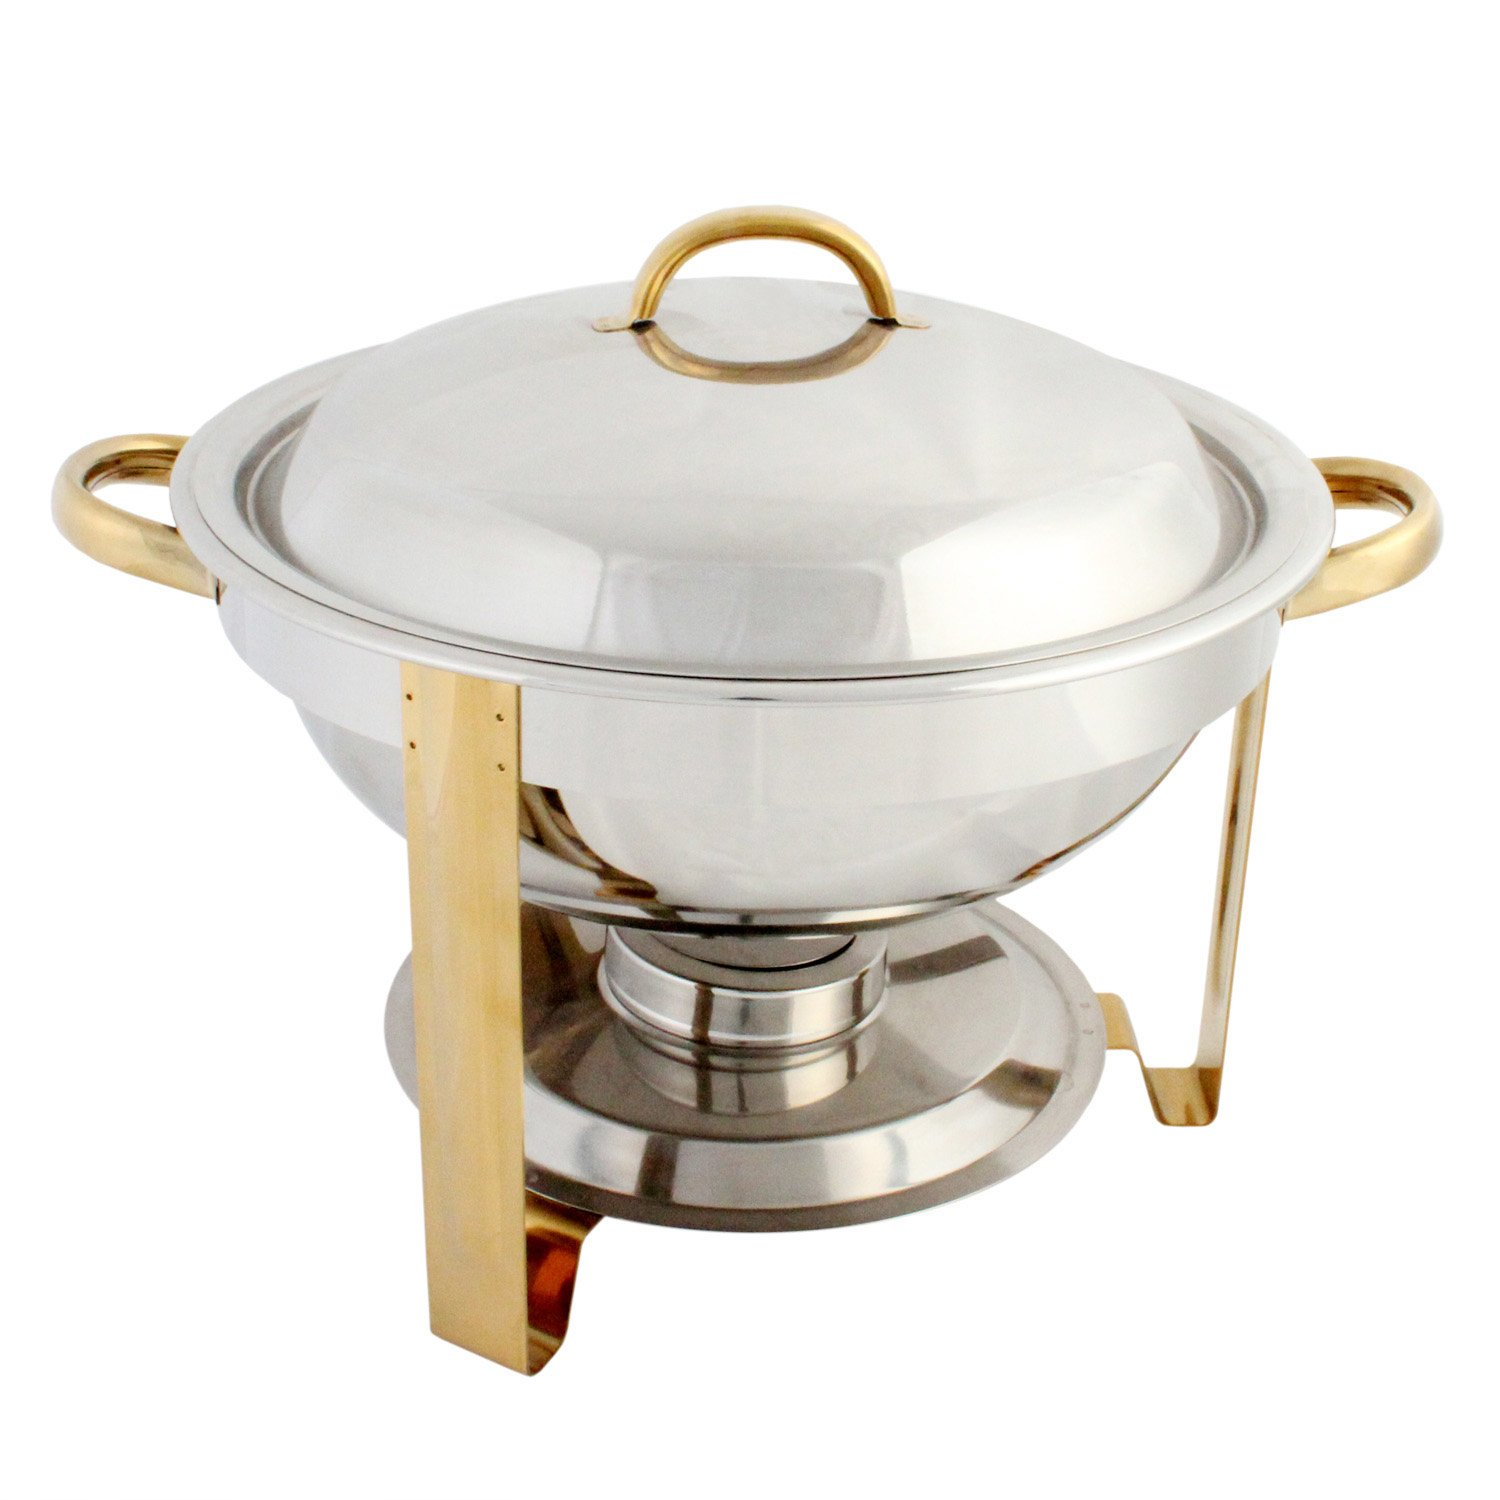 Excellante Stainless Steel 4-Quart Gold Accented Round Chafer Thunder Group SLRCF0831GH